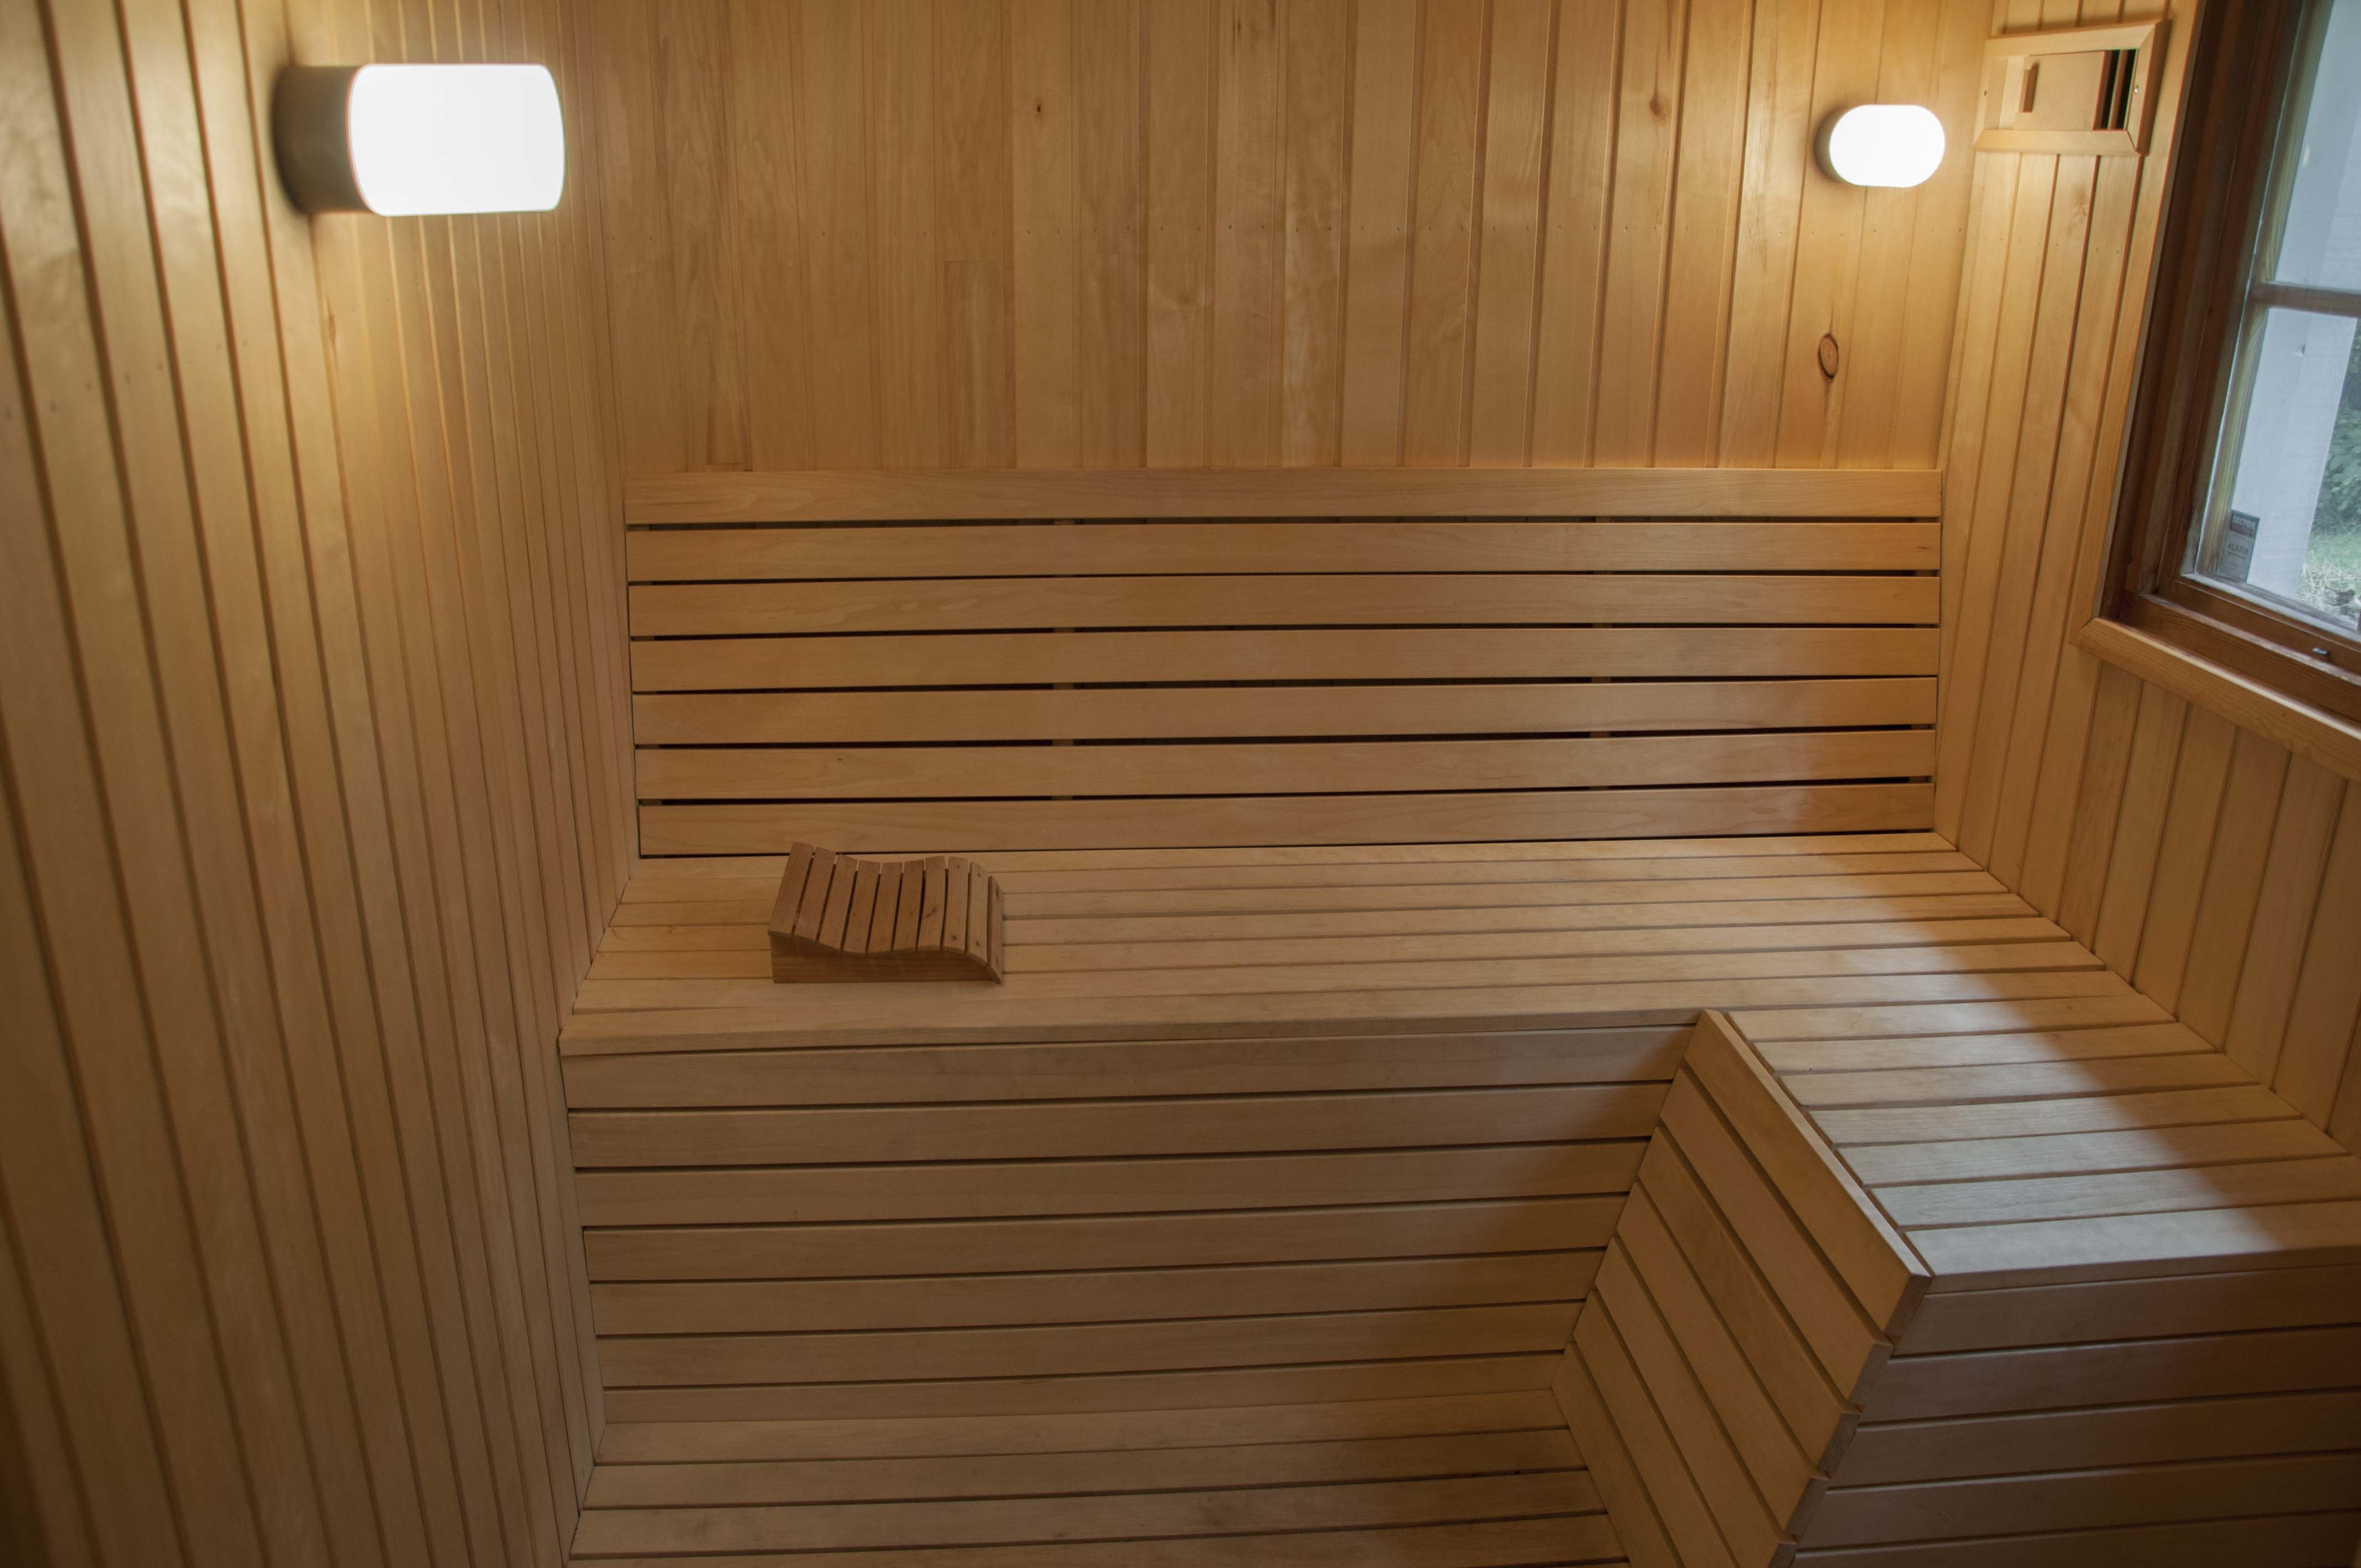 How to build a sauna and how I did it with no prior experience